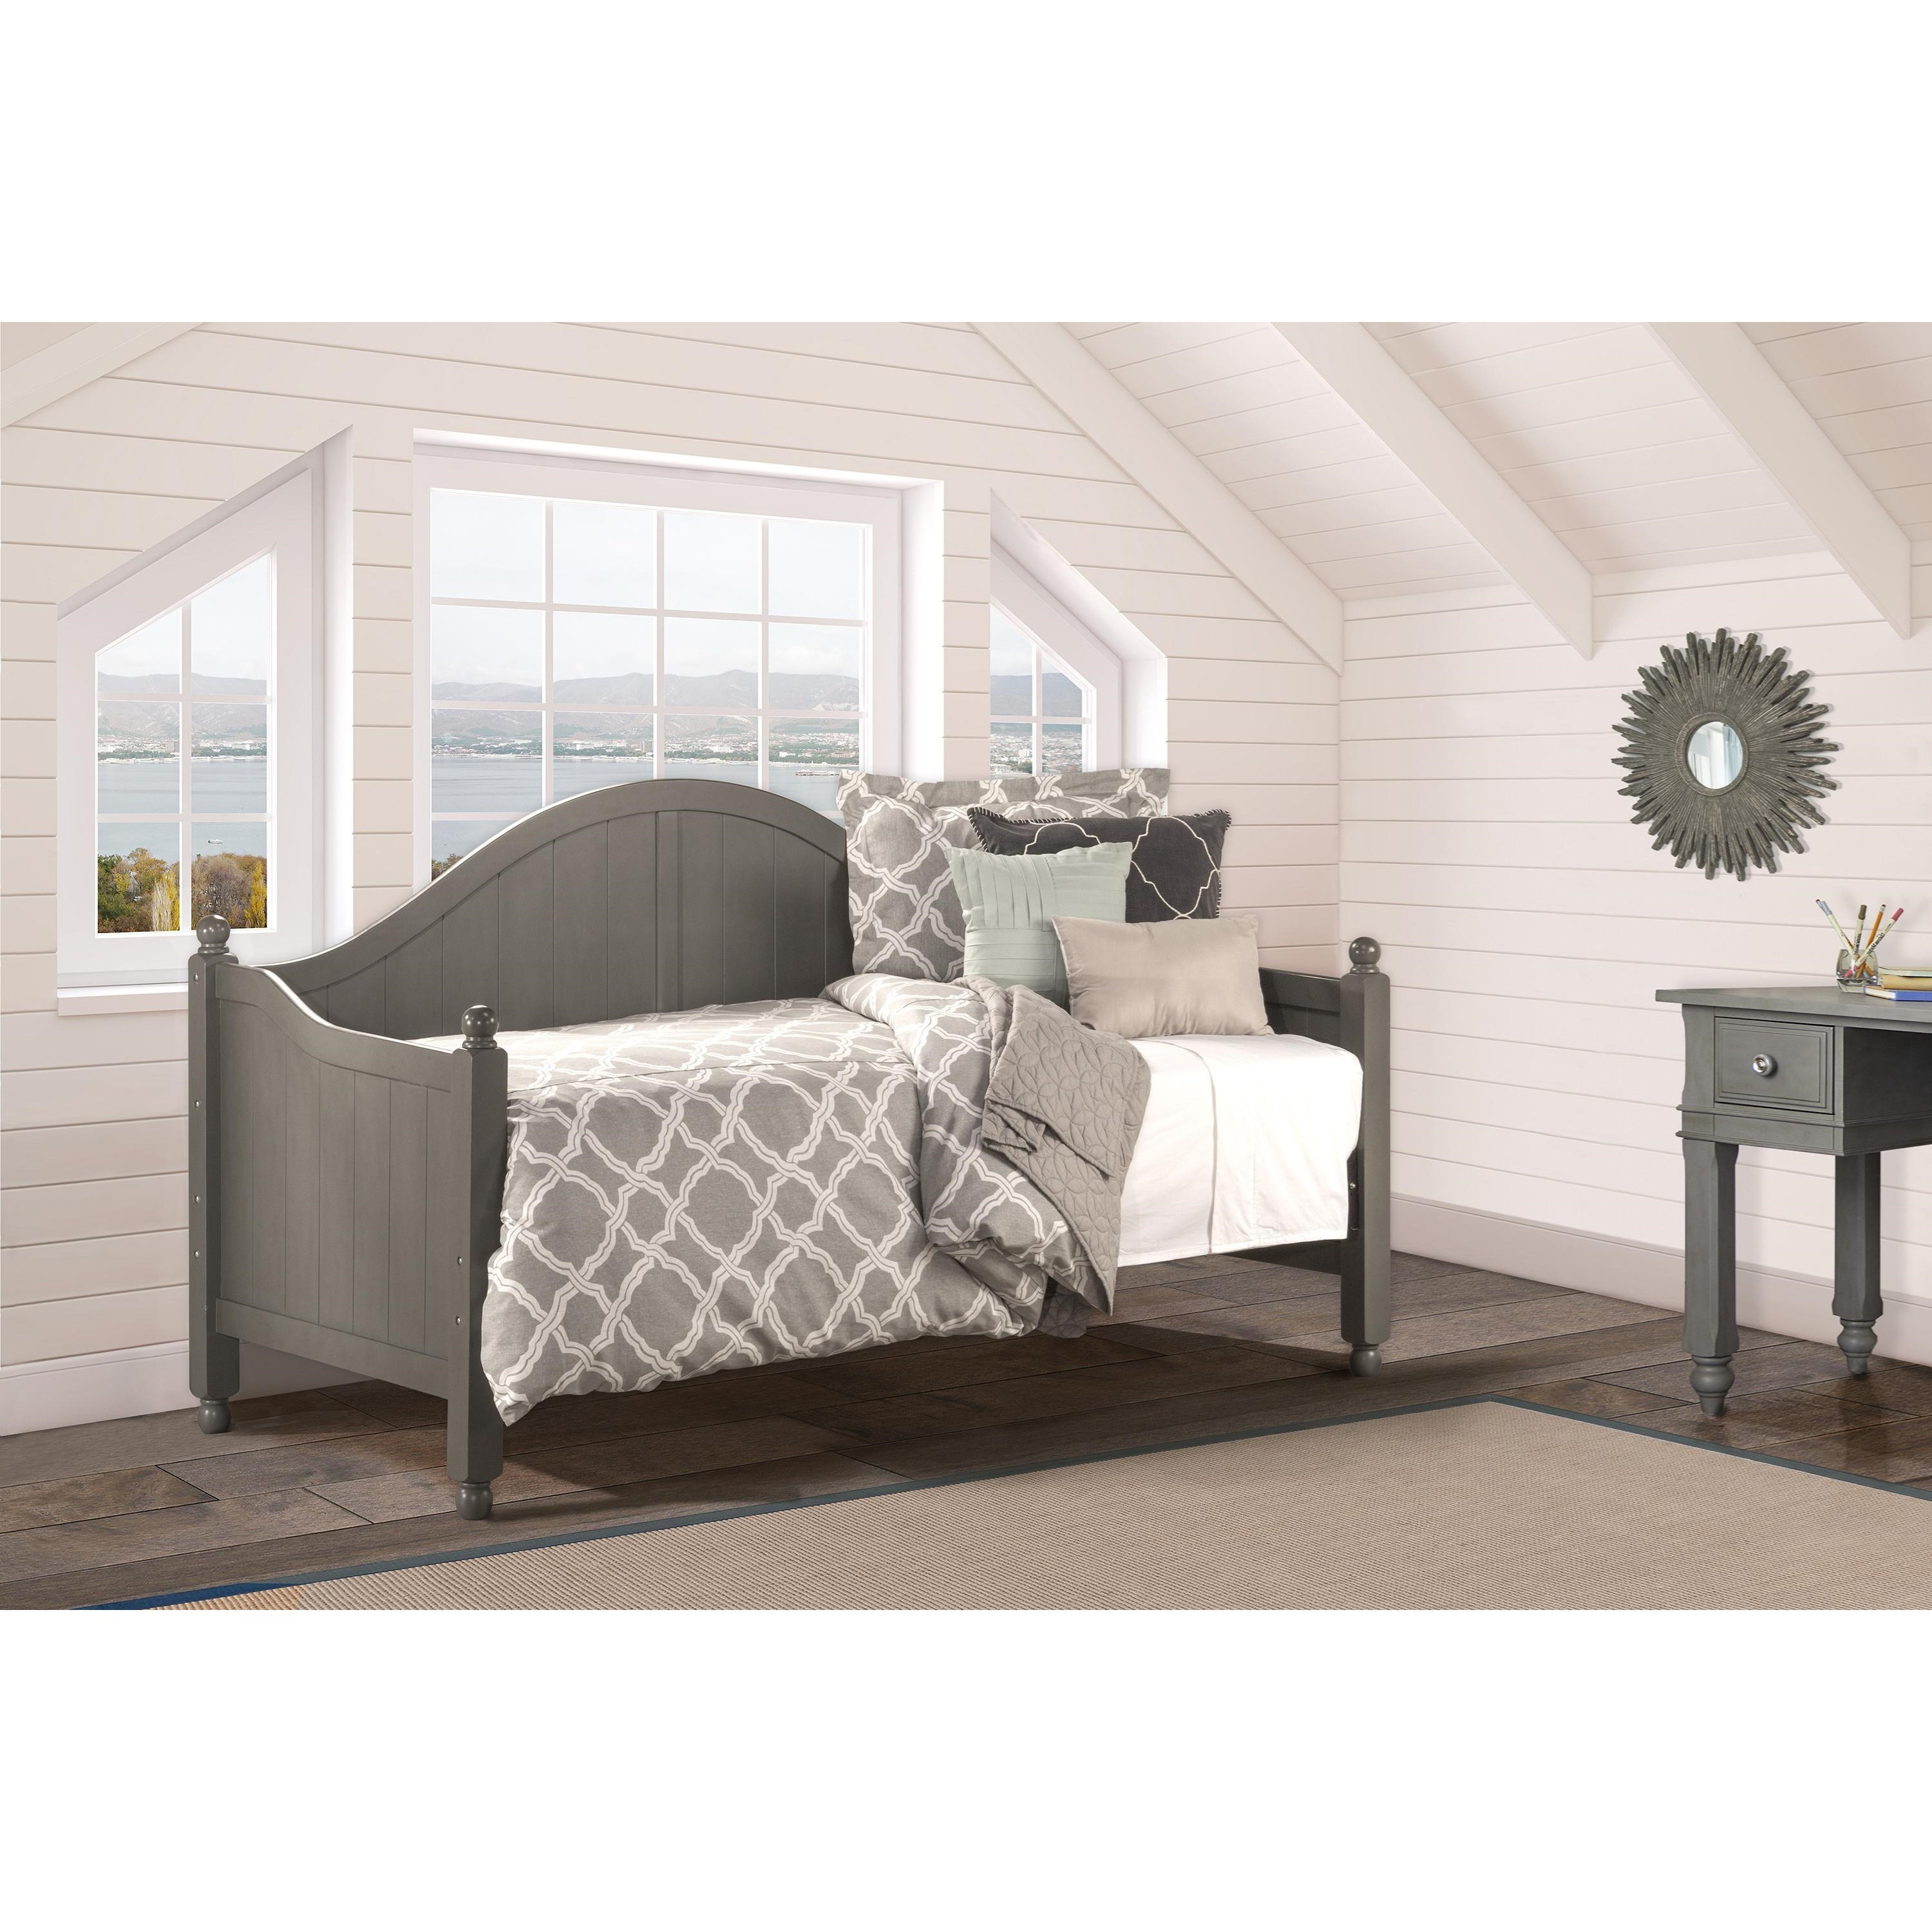 Hillsdale Daybeds Stone Colored Wooden Daybed